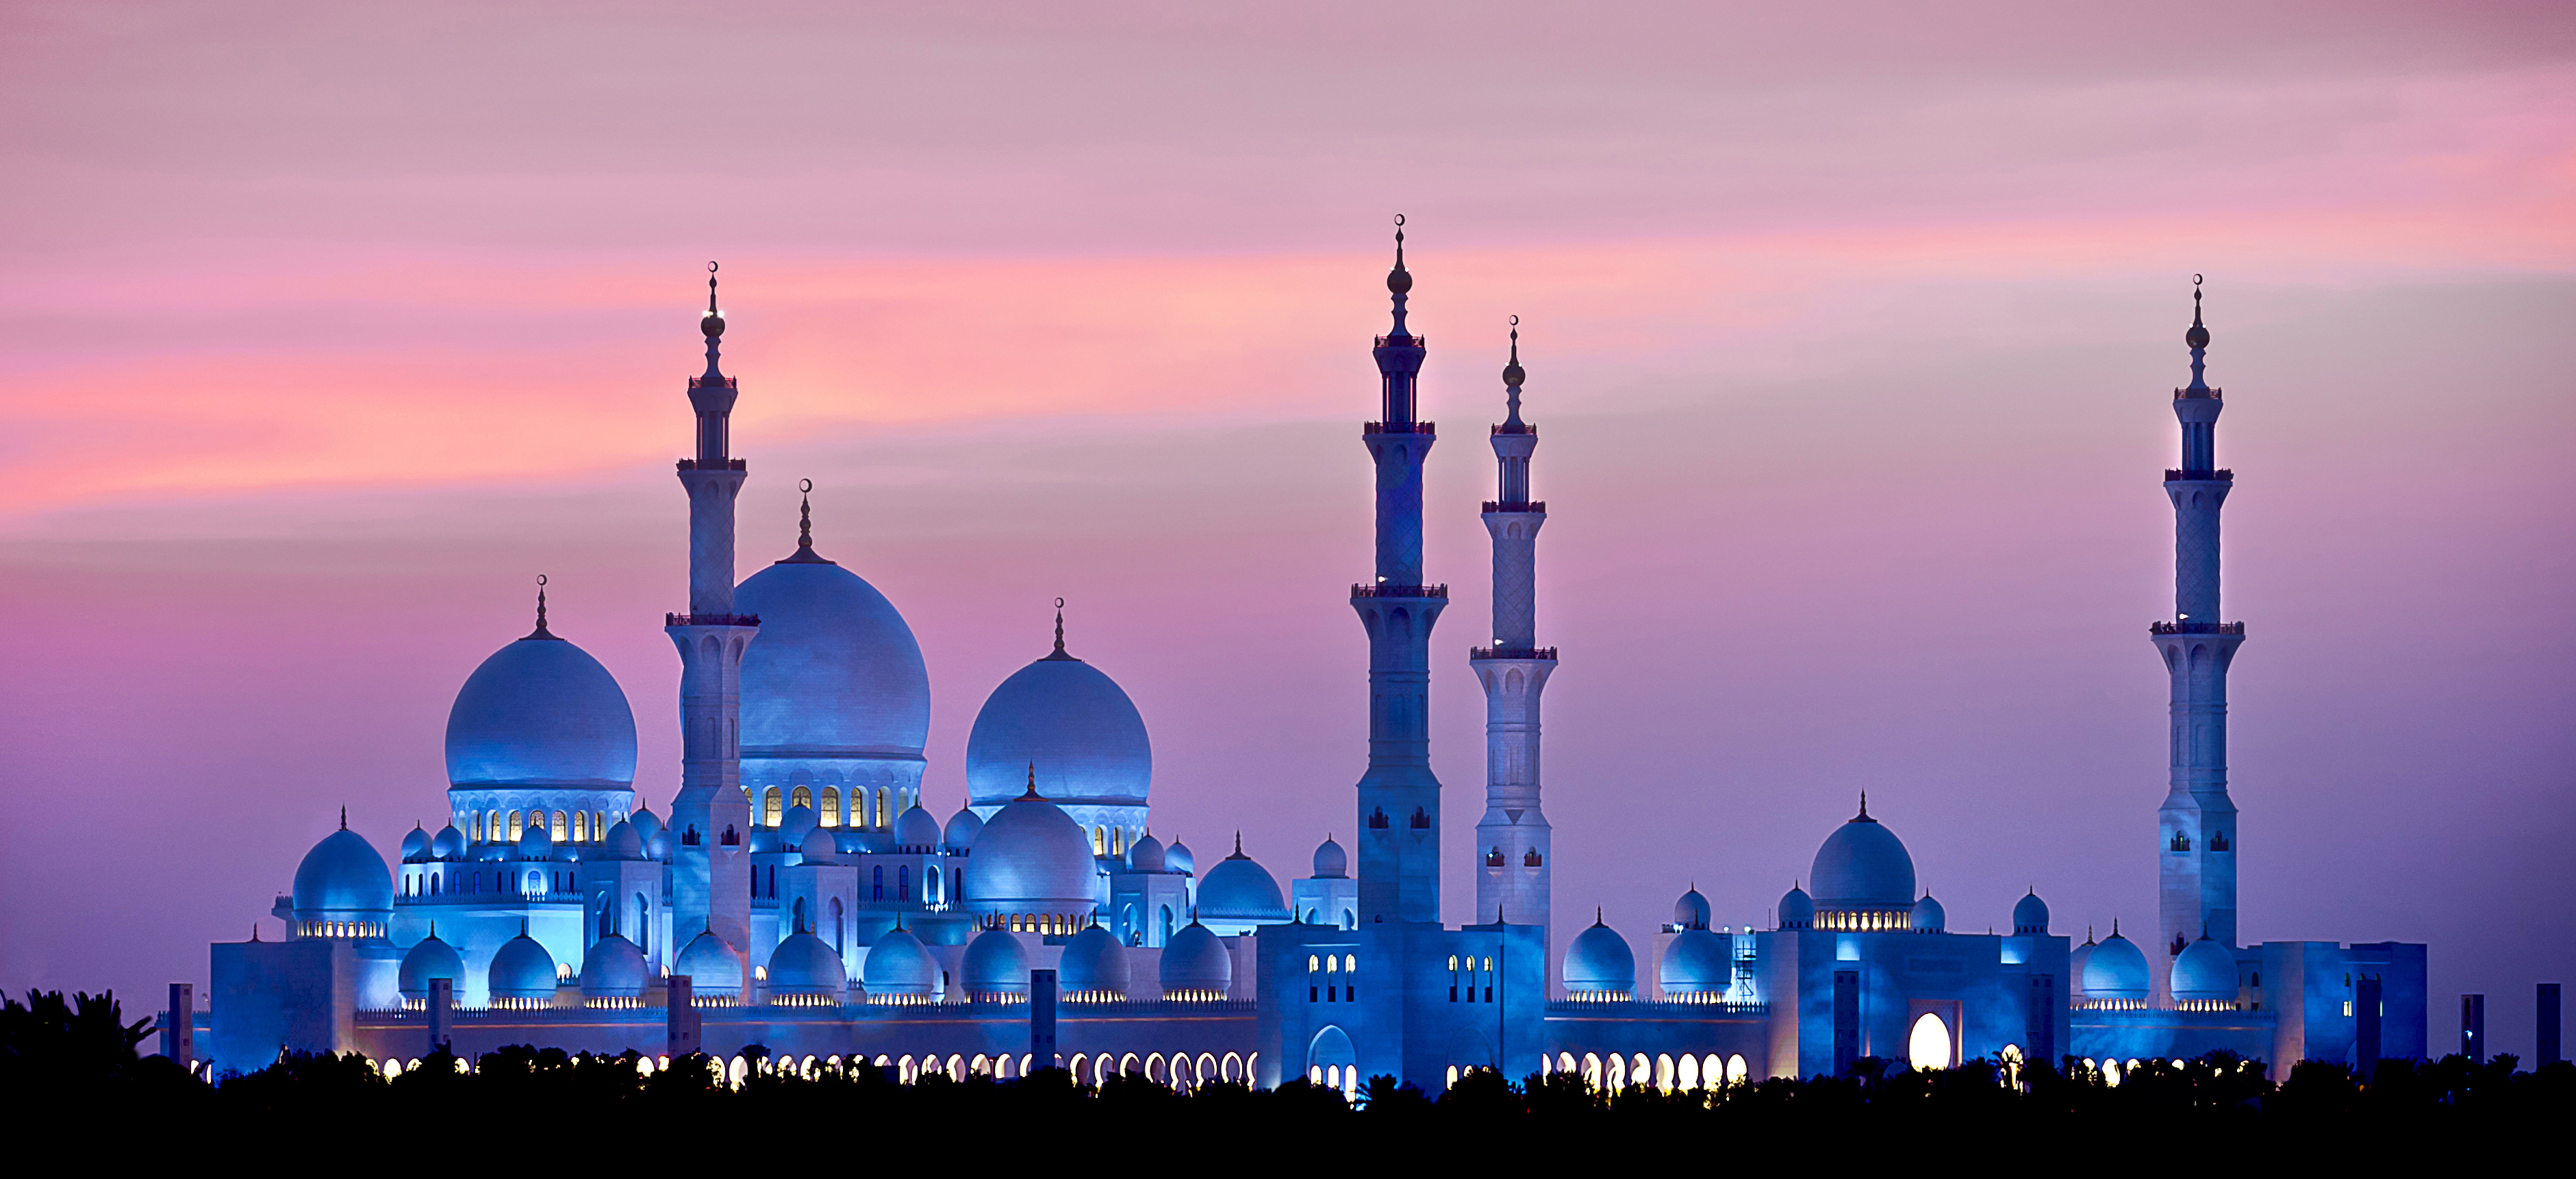 About Sheik Zayed Mosque The Largest Mosque In Uae